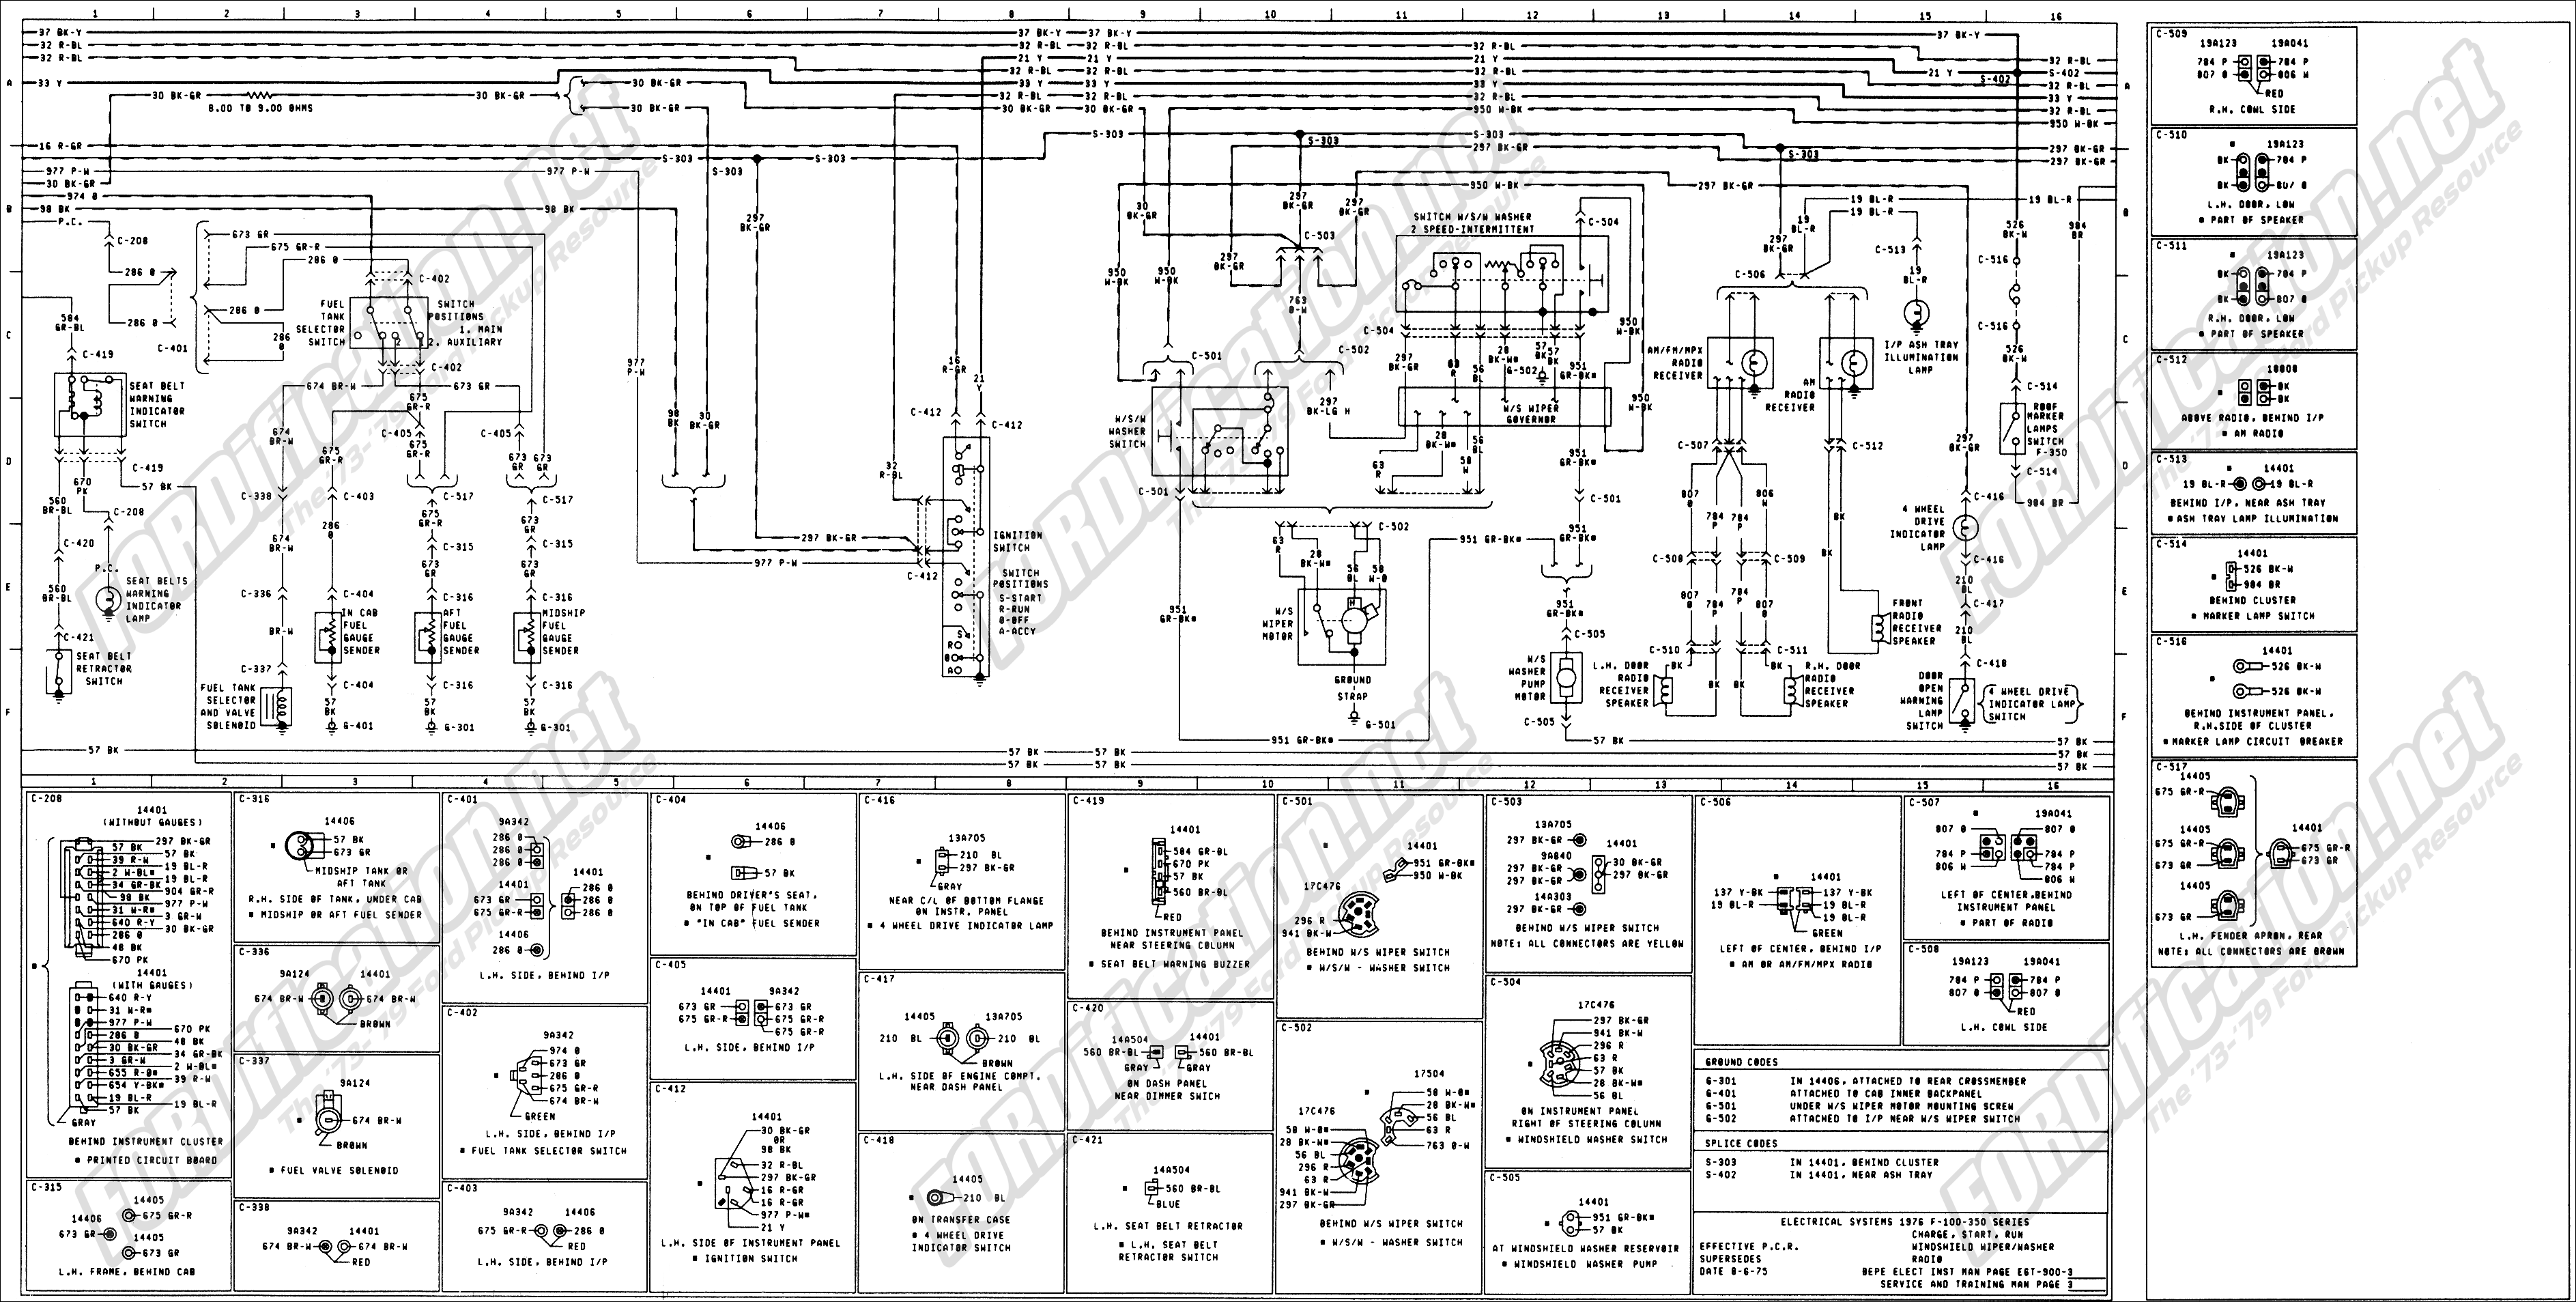 wiring_76master_3of9 ford ranger & bronco ii electrical diagrams at the ranger station 1979 ford truck fuse box diagram at gsmx.co